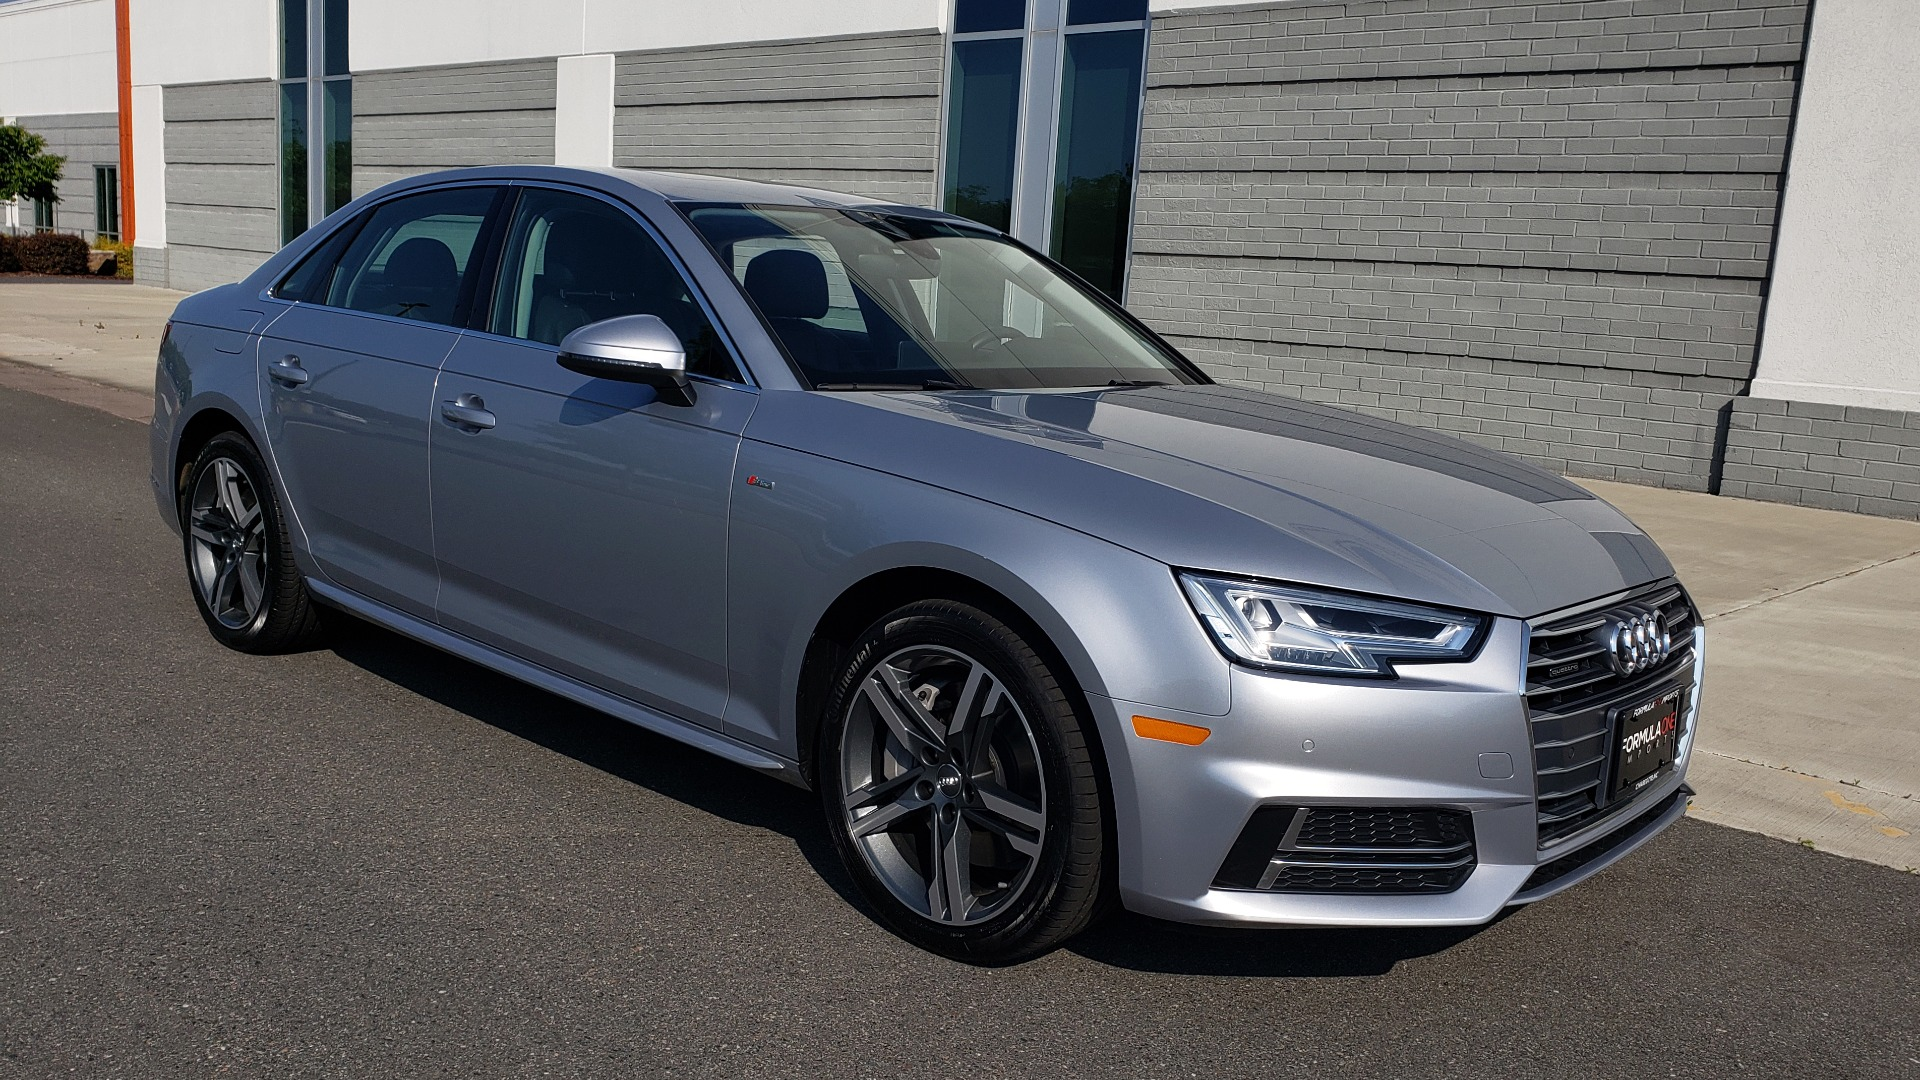 Used 2018 Audi A4 PREMIUM PLUS 2.0T / NAV / SUNROOF / B&O SND / CLD WTHR / REARVIEW for sale $29,395 at Formula Imports in Charlotte NC 28227 4